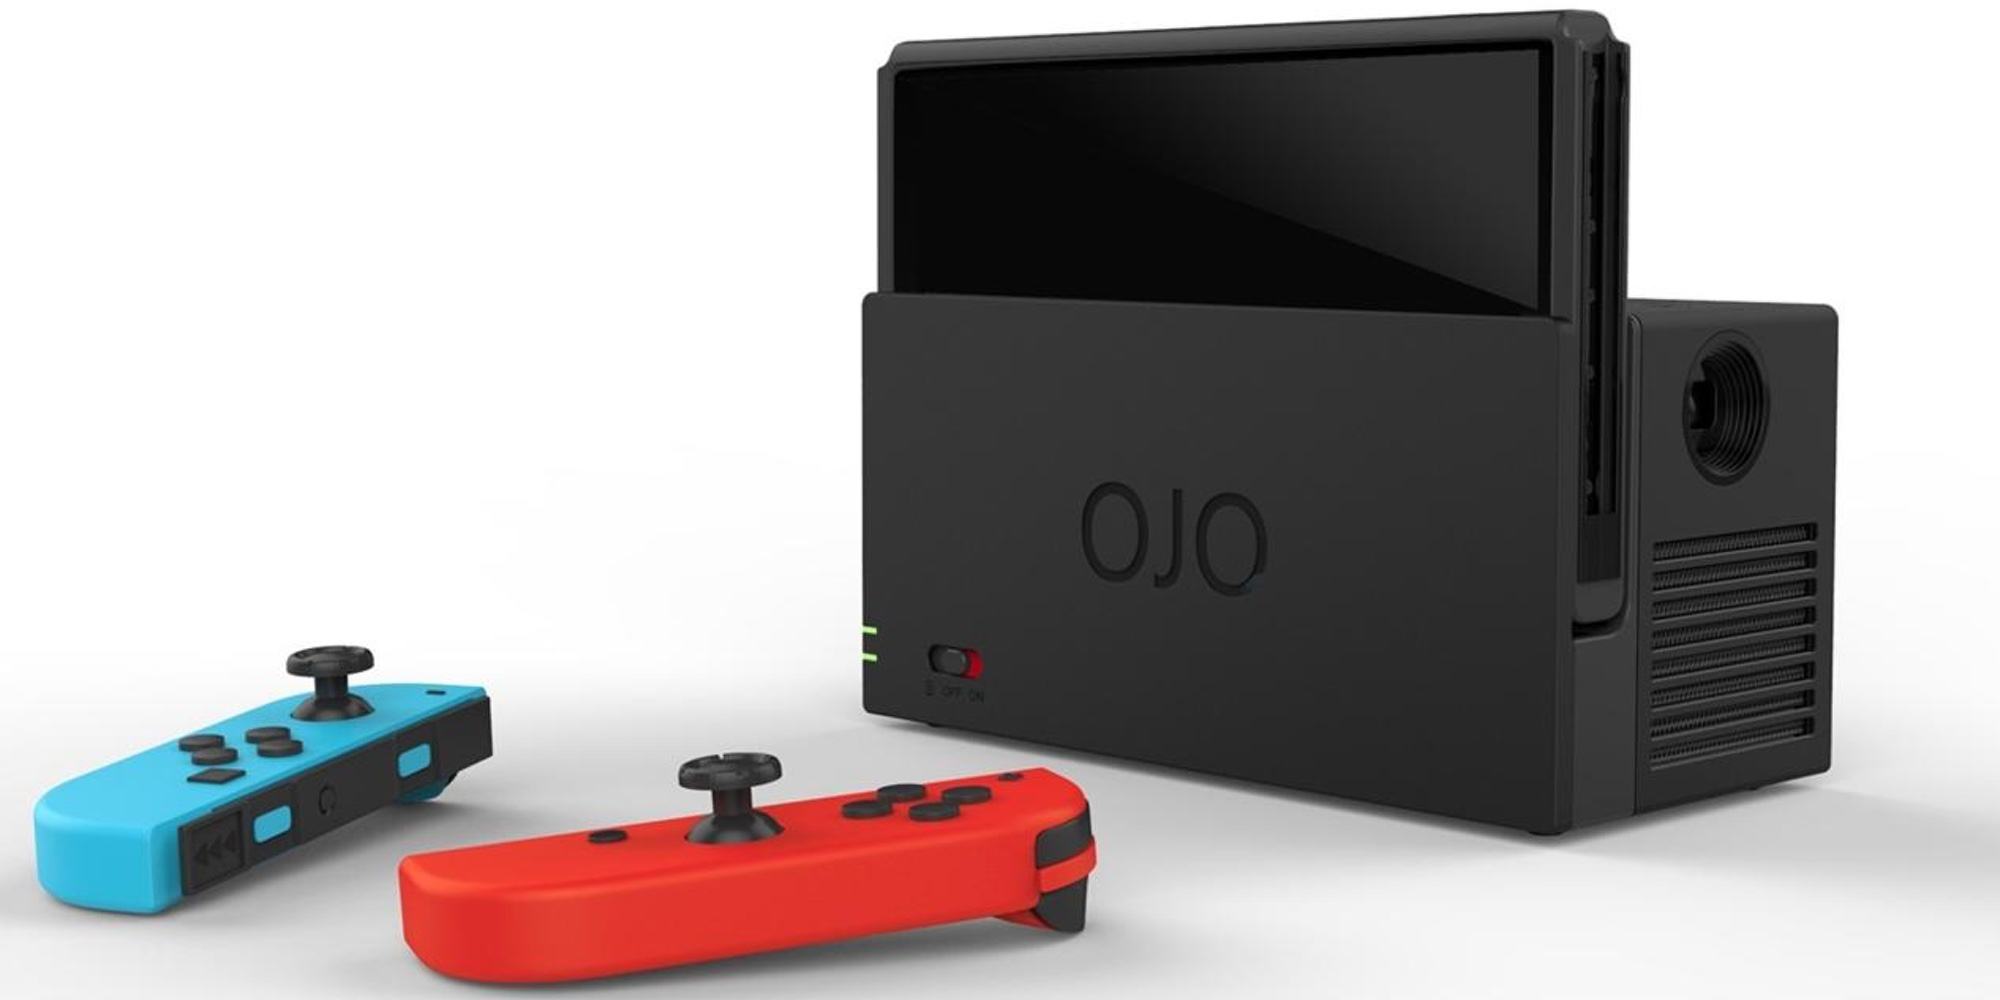 Ojo Is The World S First Projector For Nintendo Switch